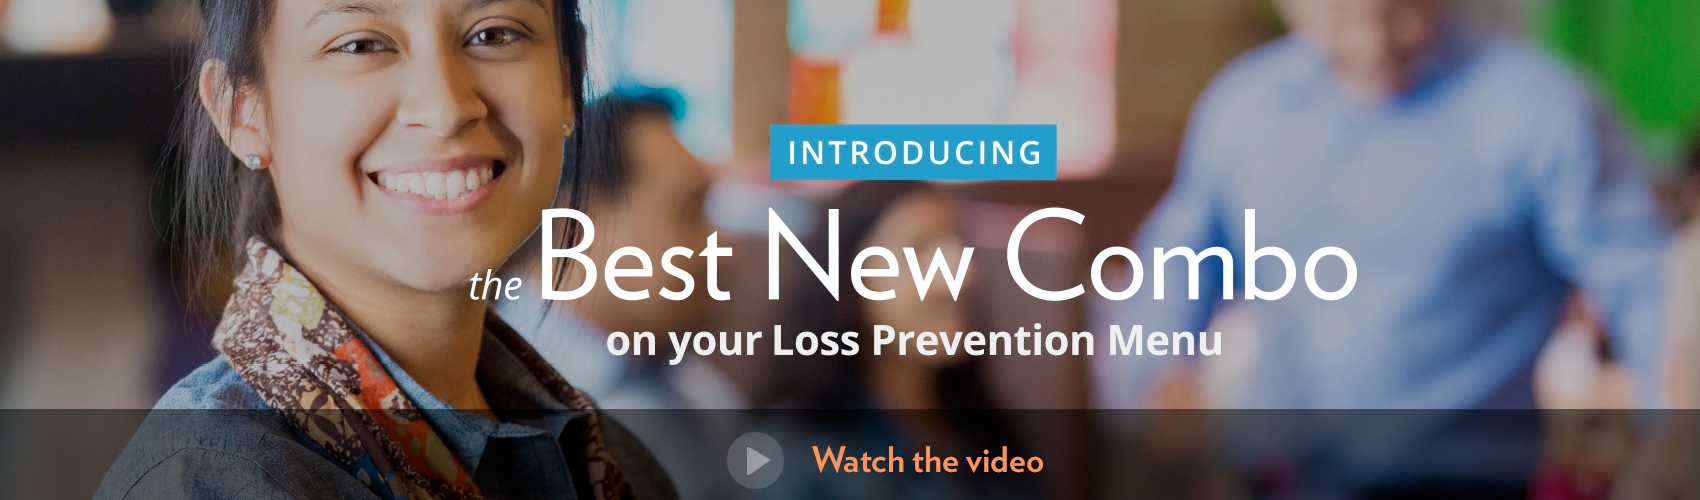 Introducing the best new combo on your loss prevention menu. Click to watch the video.